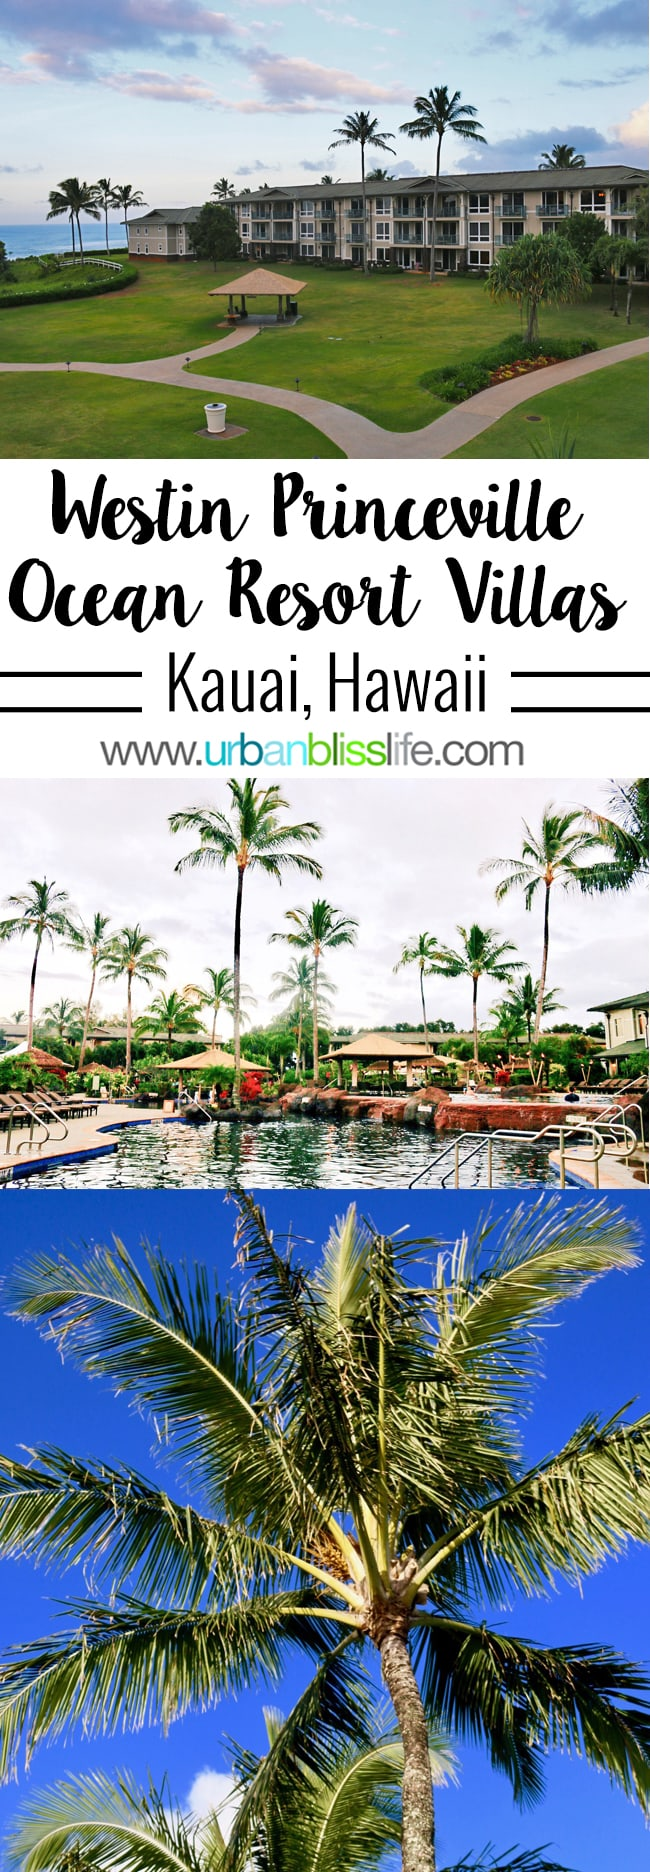 Where to Stay in Kauai - Westin Princeville Ocean Resort Villas review on UrbanBlissLife.com